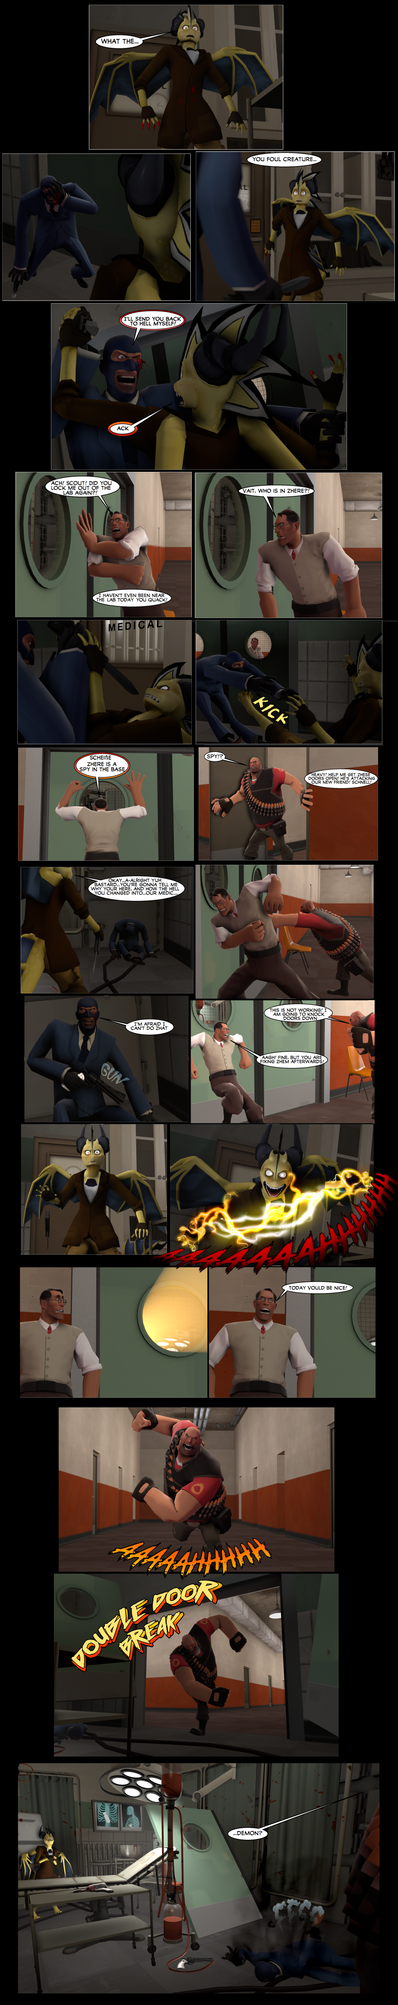 Dire Straits- Page 44 by kittin12376